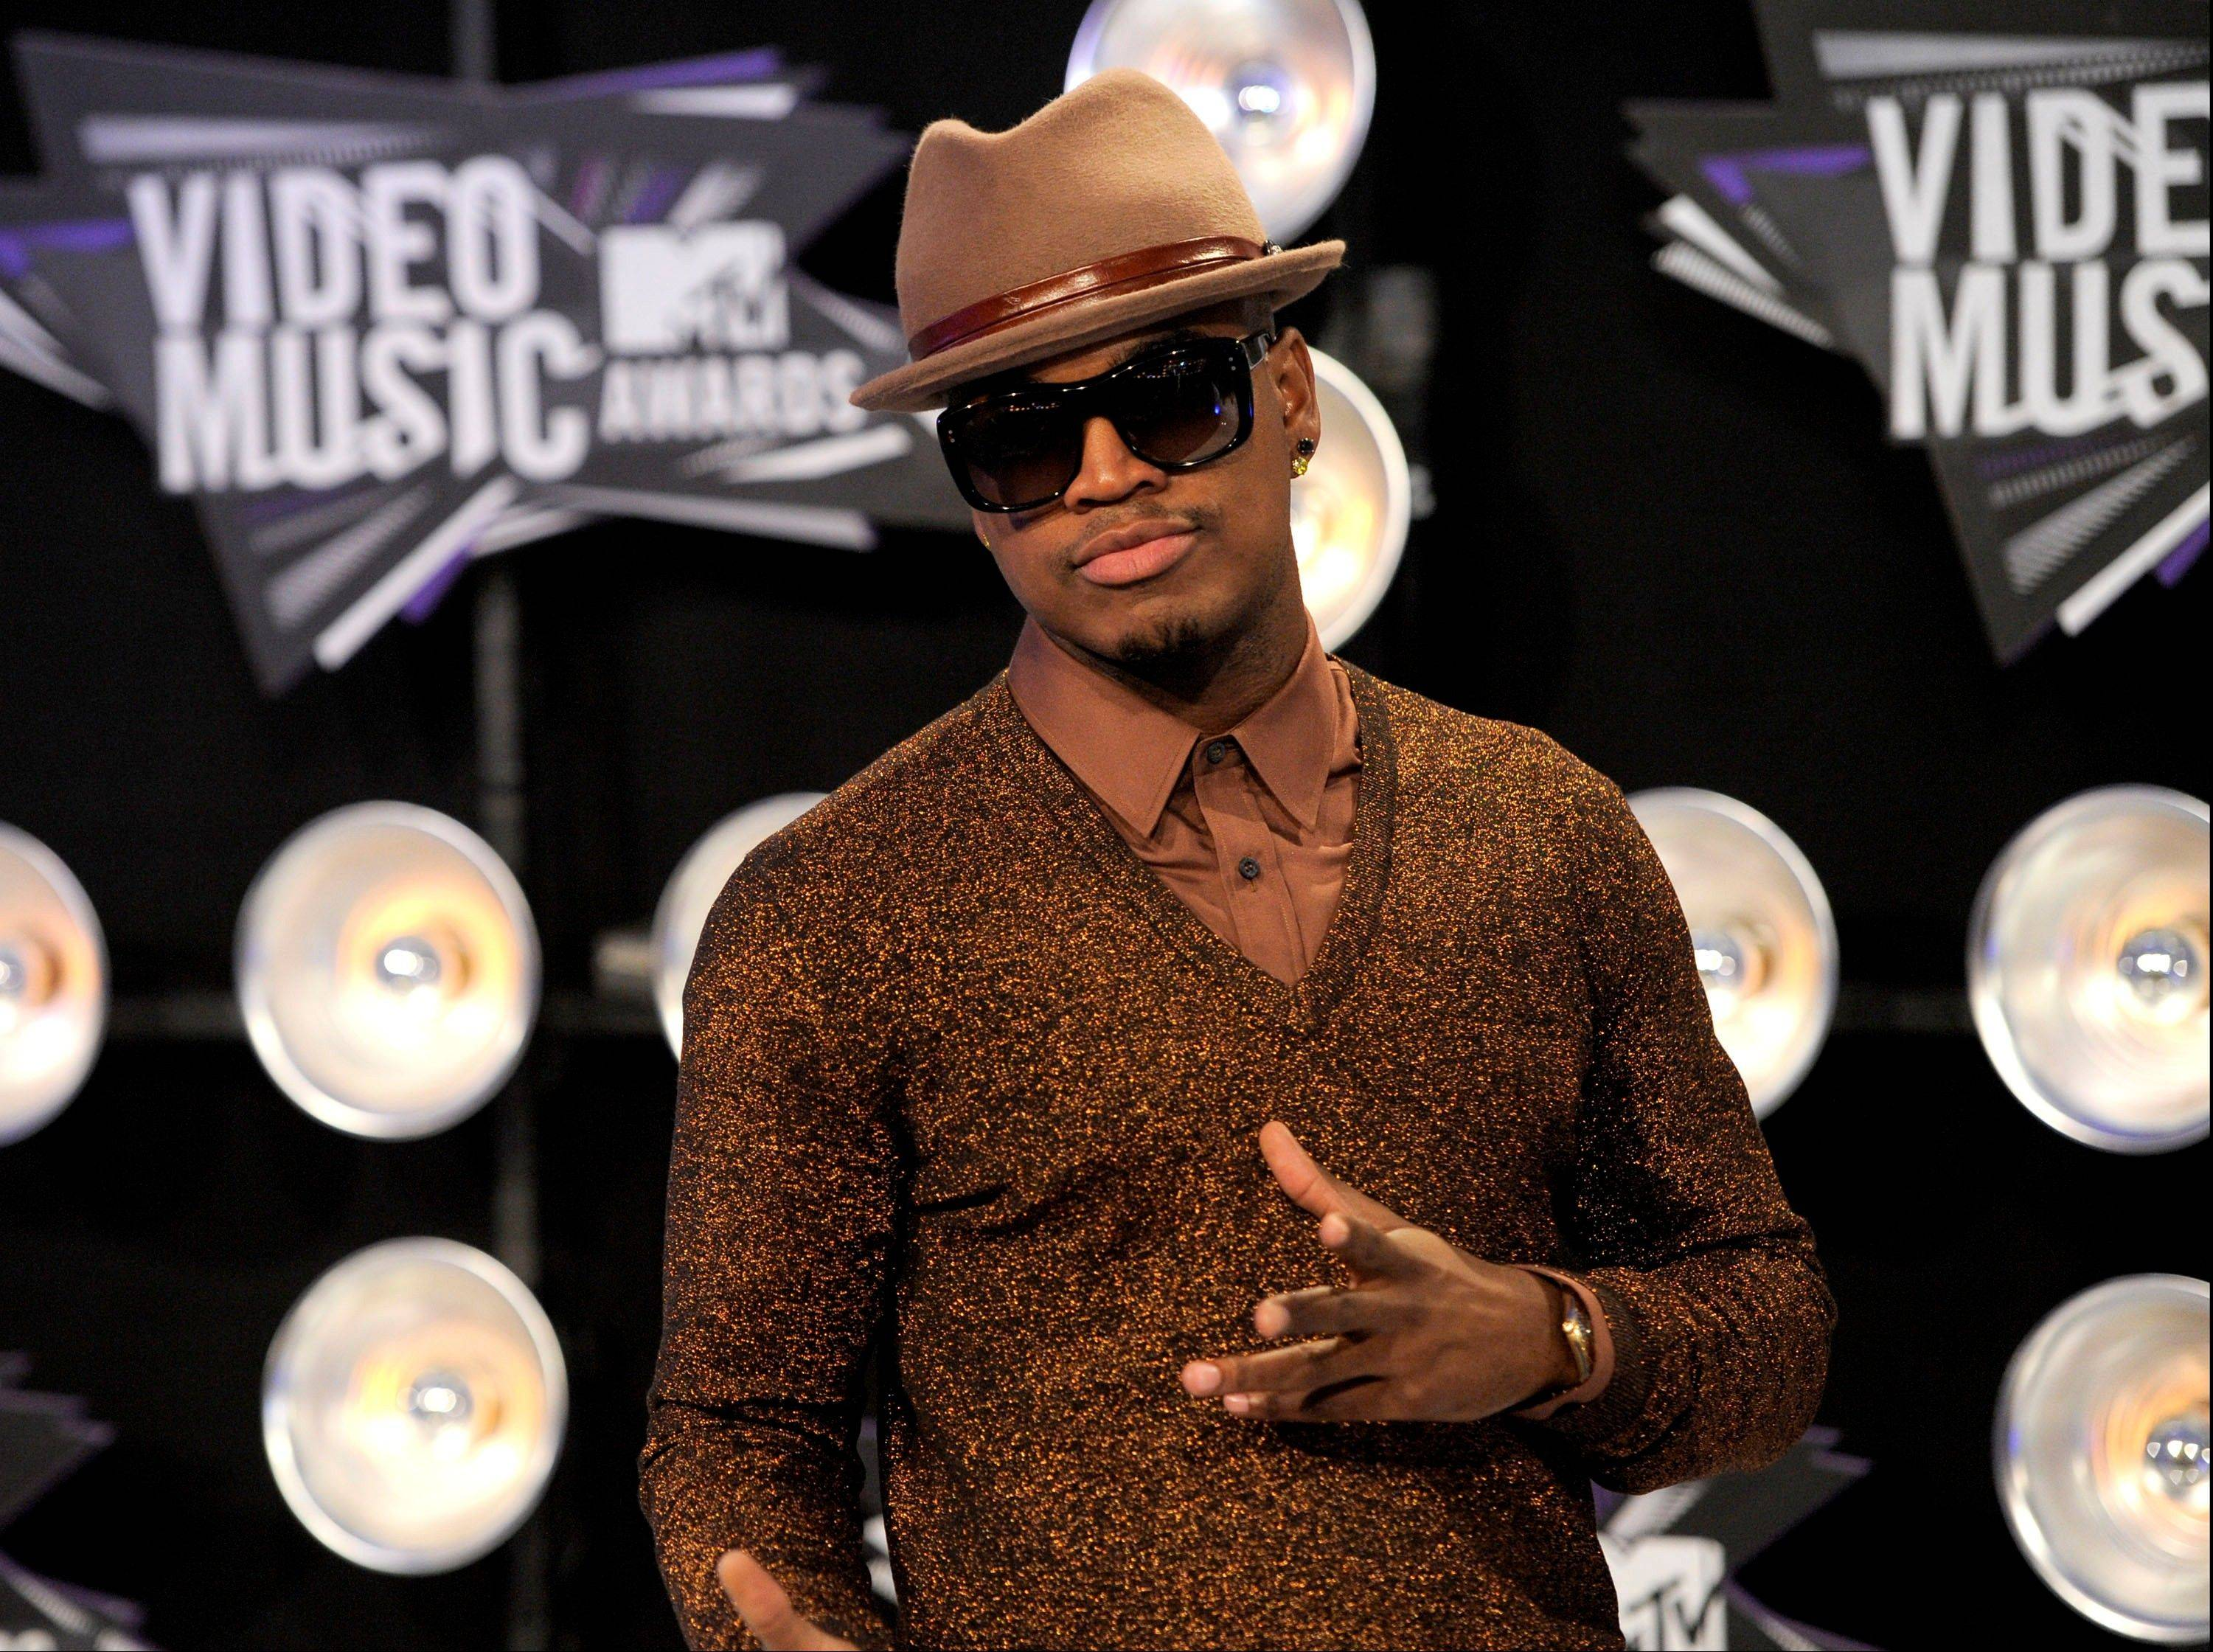 Ne-Yo arrives at the MTV Video Music Awards on Sunday in Los Angeles.